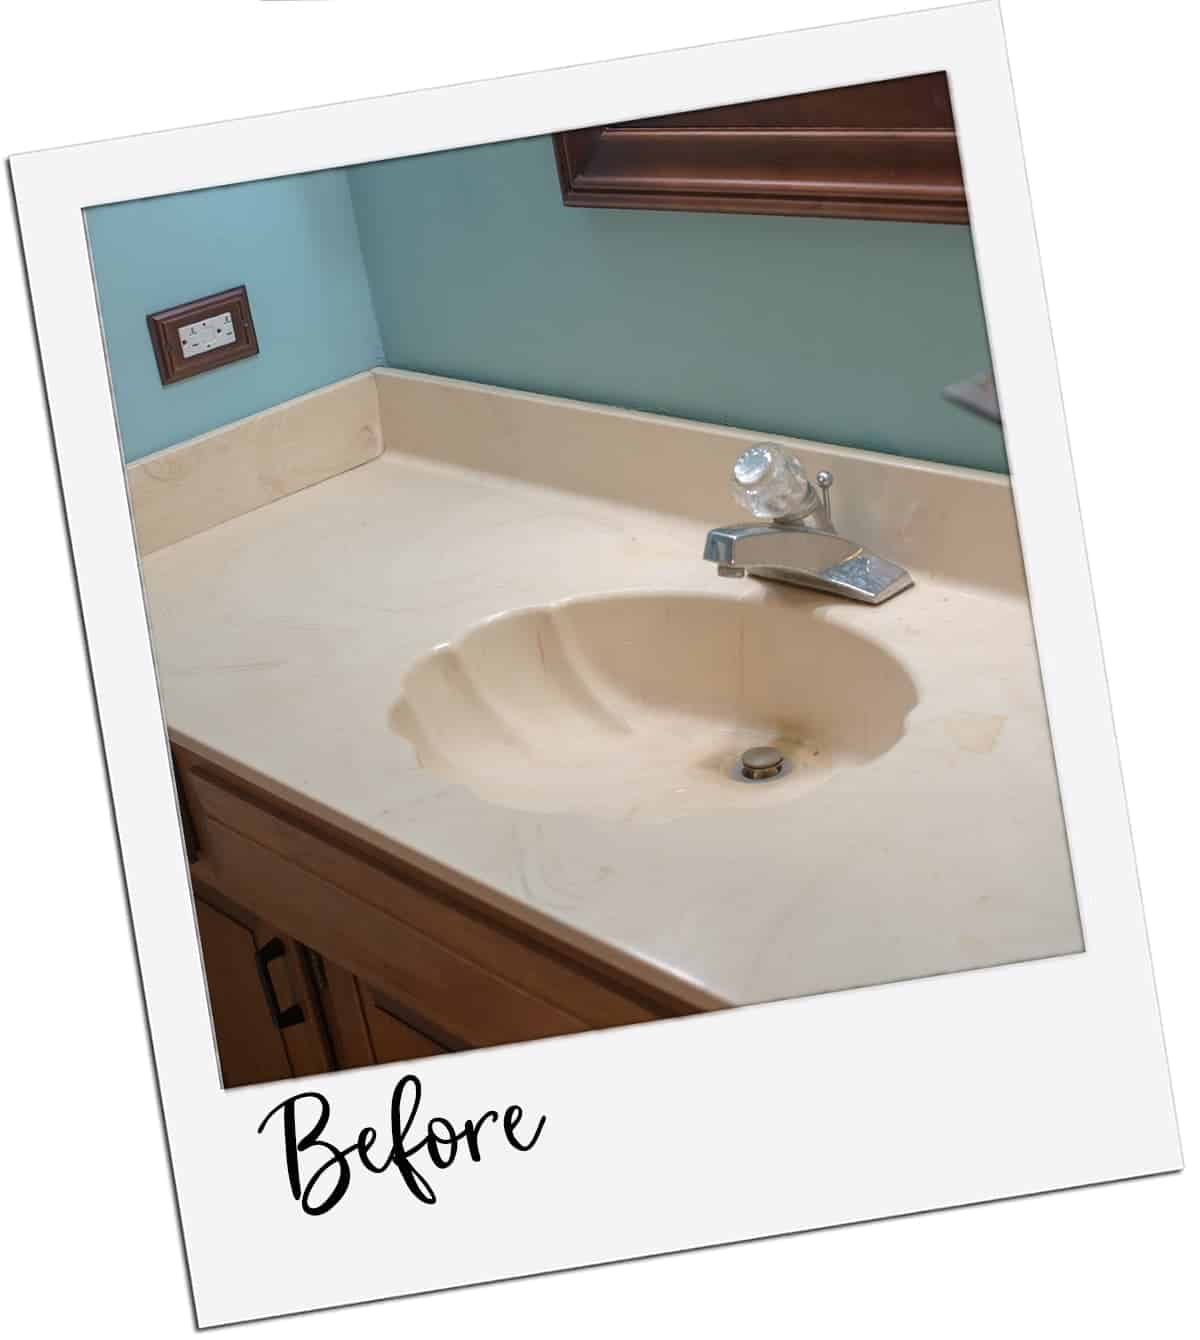 installing a new vanity top - 80s seashell sink